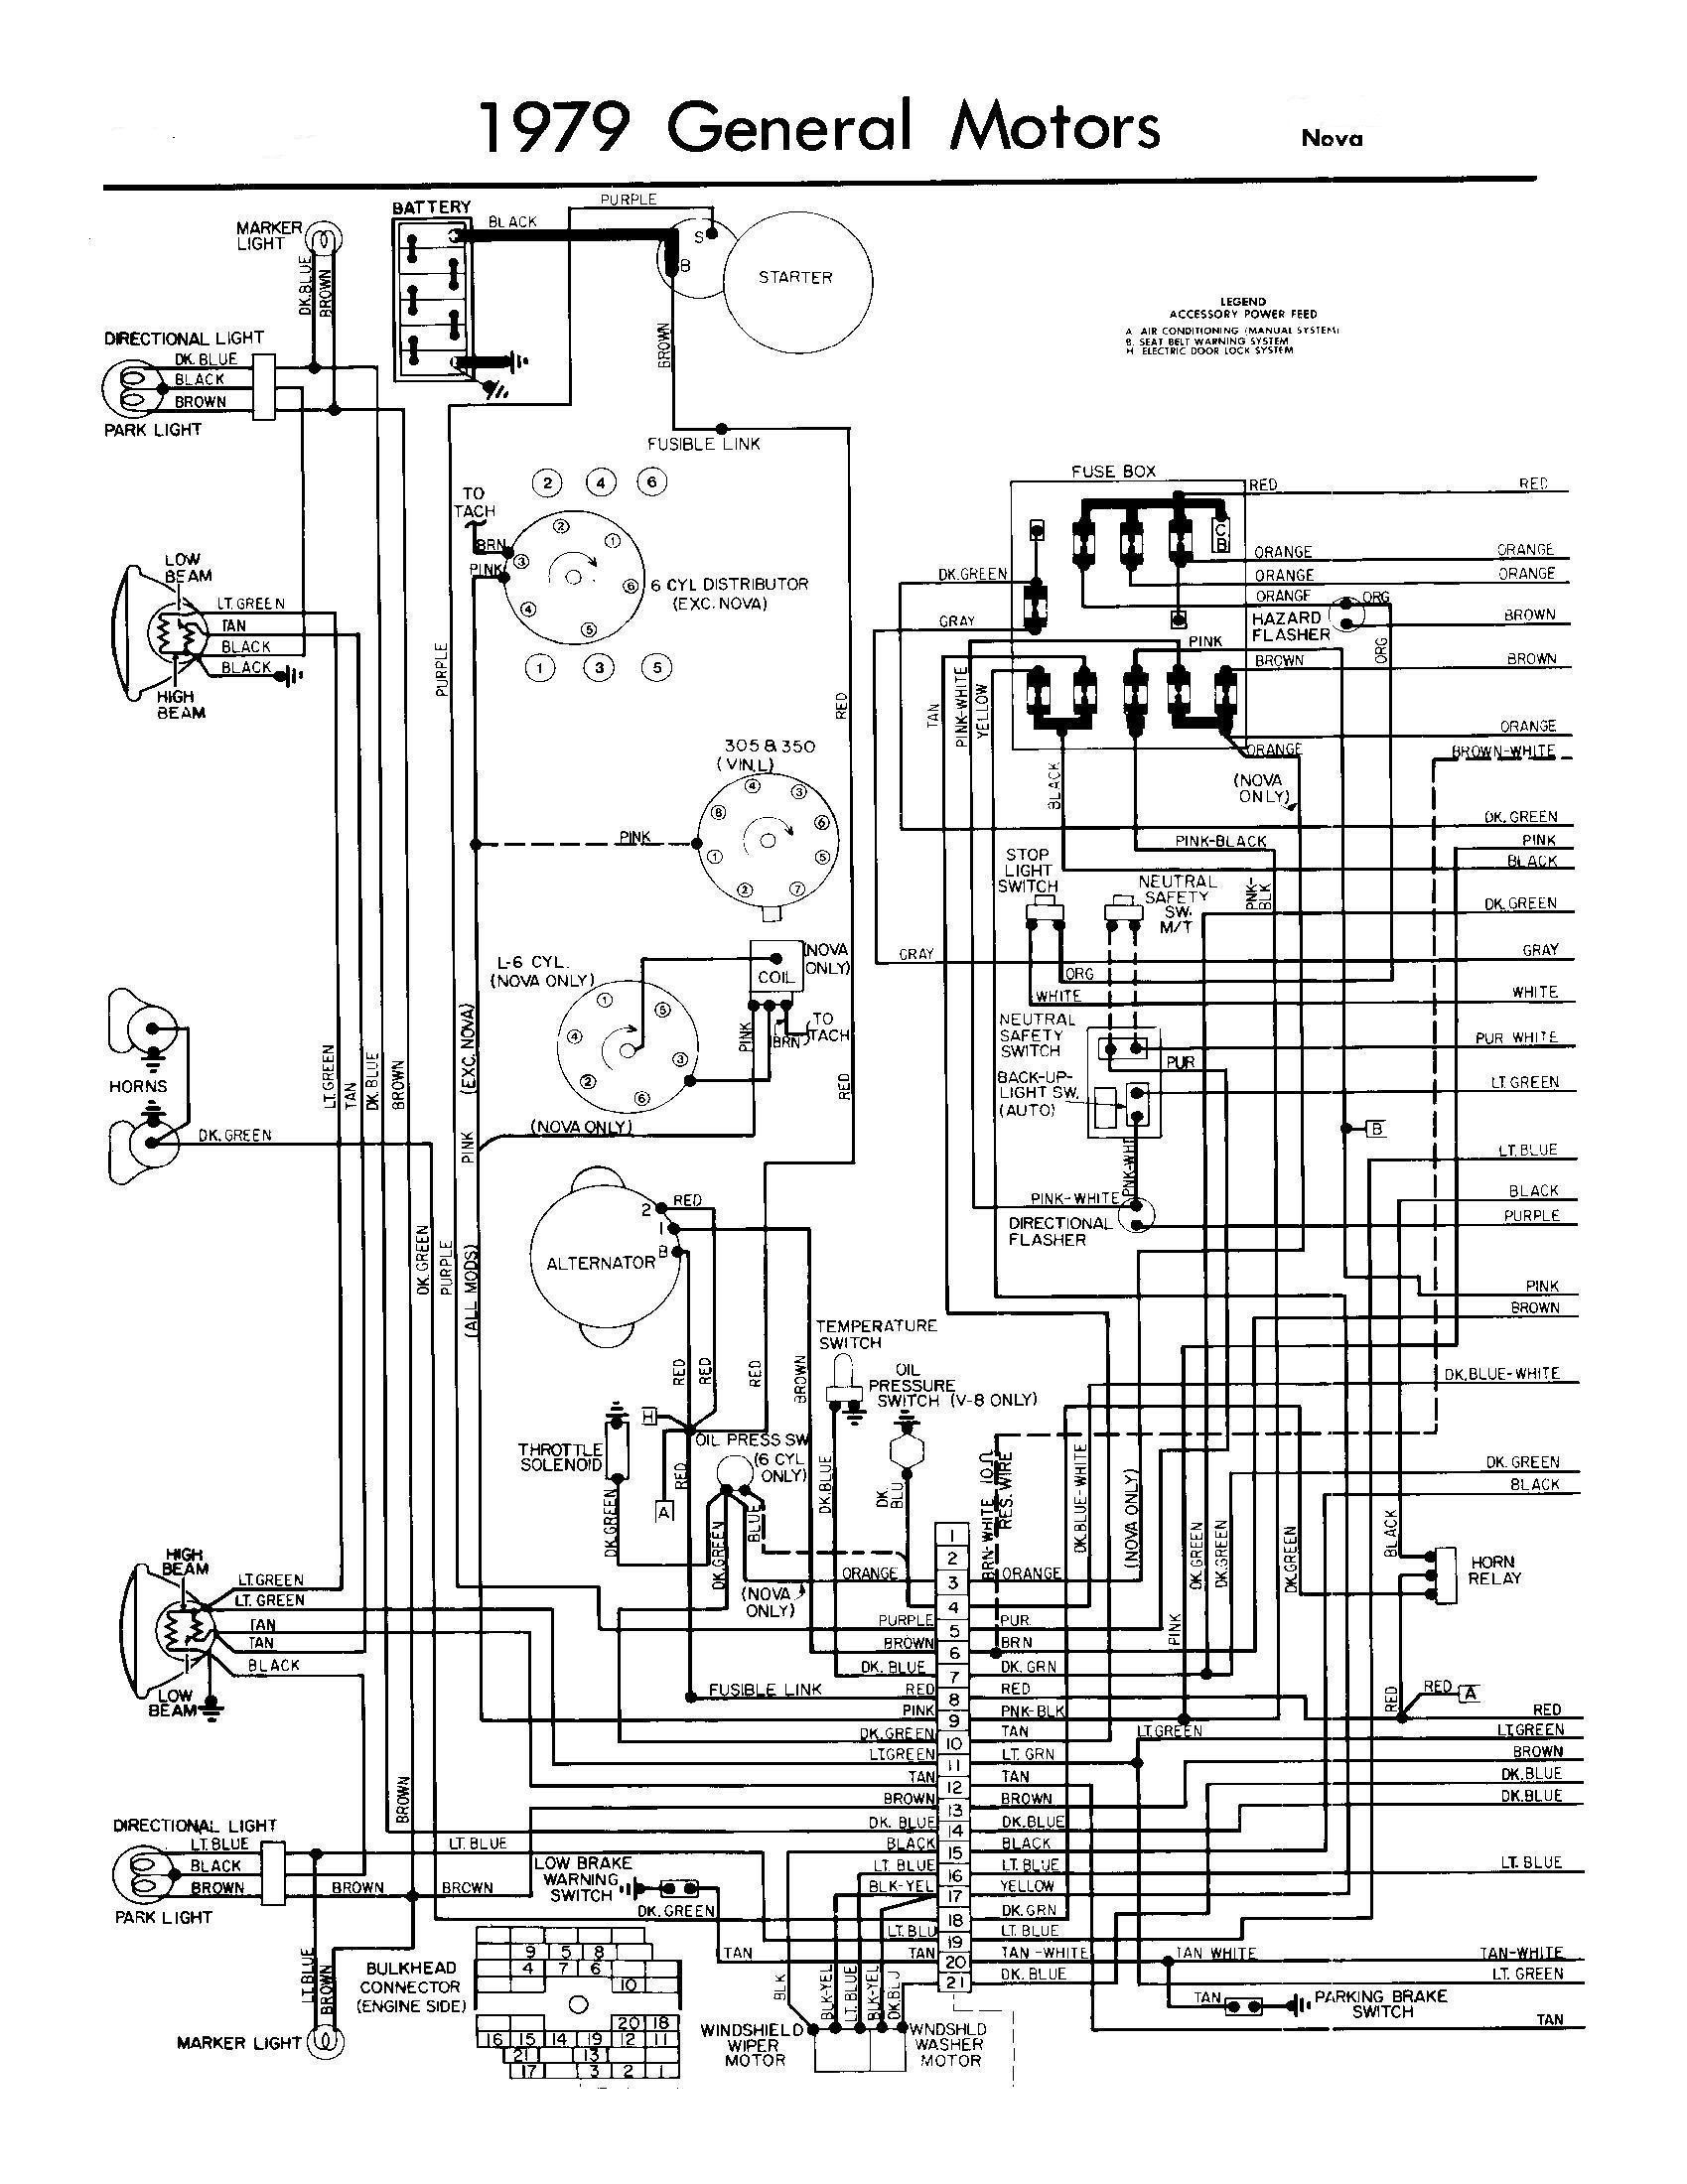 1979 trans am wiring wiring library diagram h7 1980 camaro wiring diagram 1979 trans am wiring diagram wiring diagrams export 1979 trans am turbo 1979 pontiac trans am